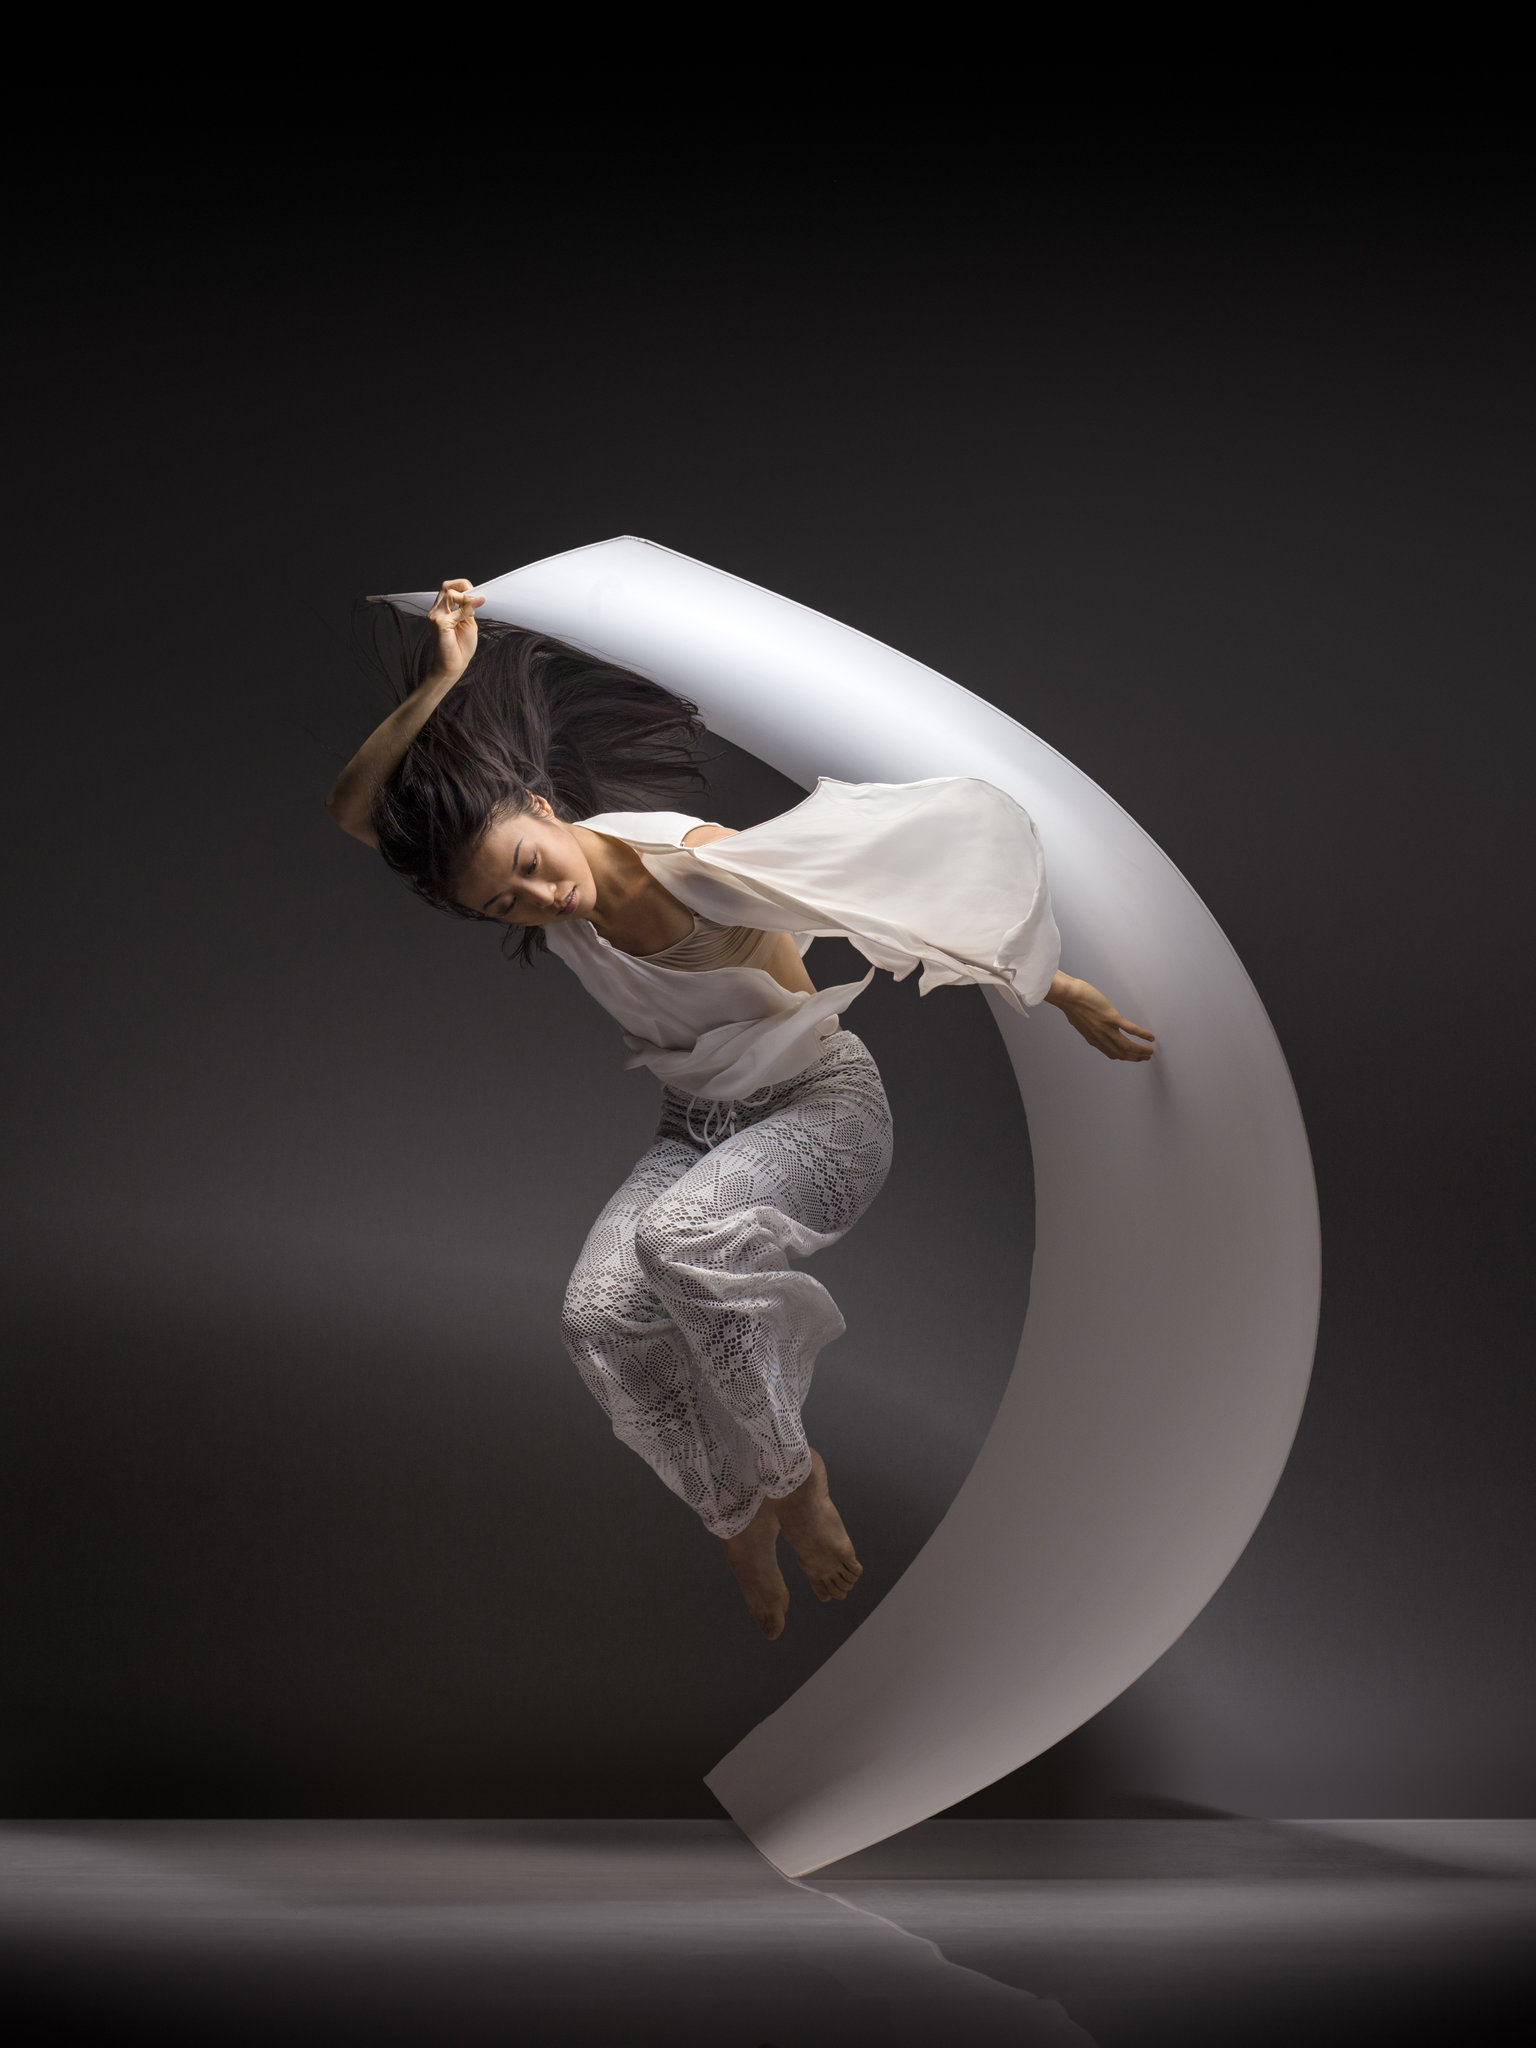 grainedephotographe-loisgreenfield10